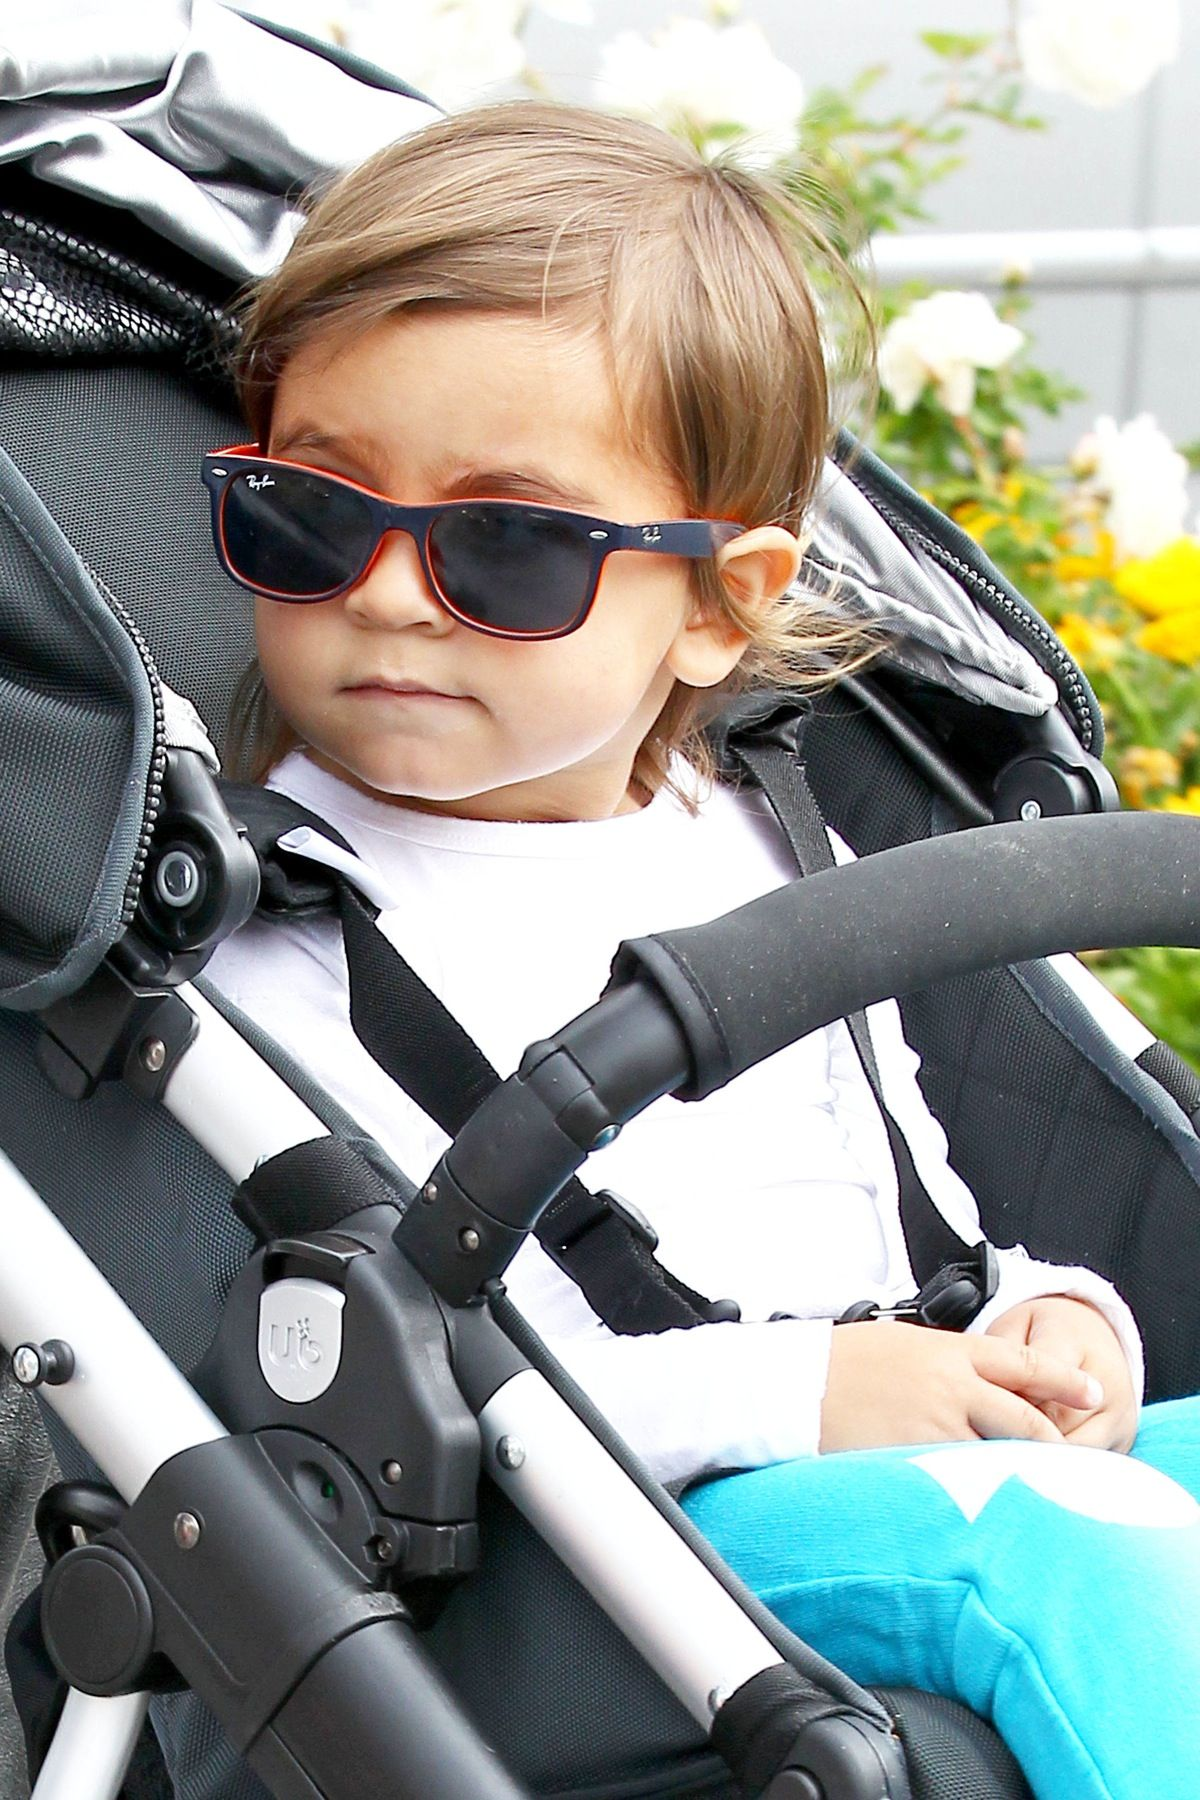 af347f29a9 Mason Dash Disick . He is the most cuetest